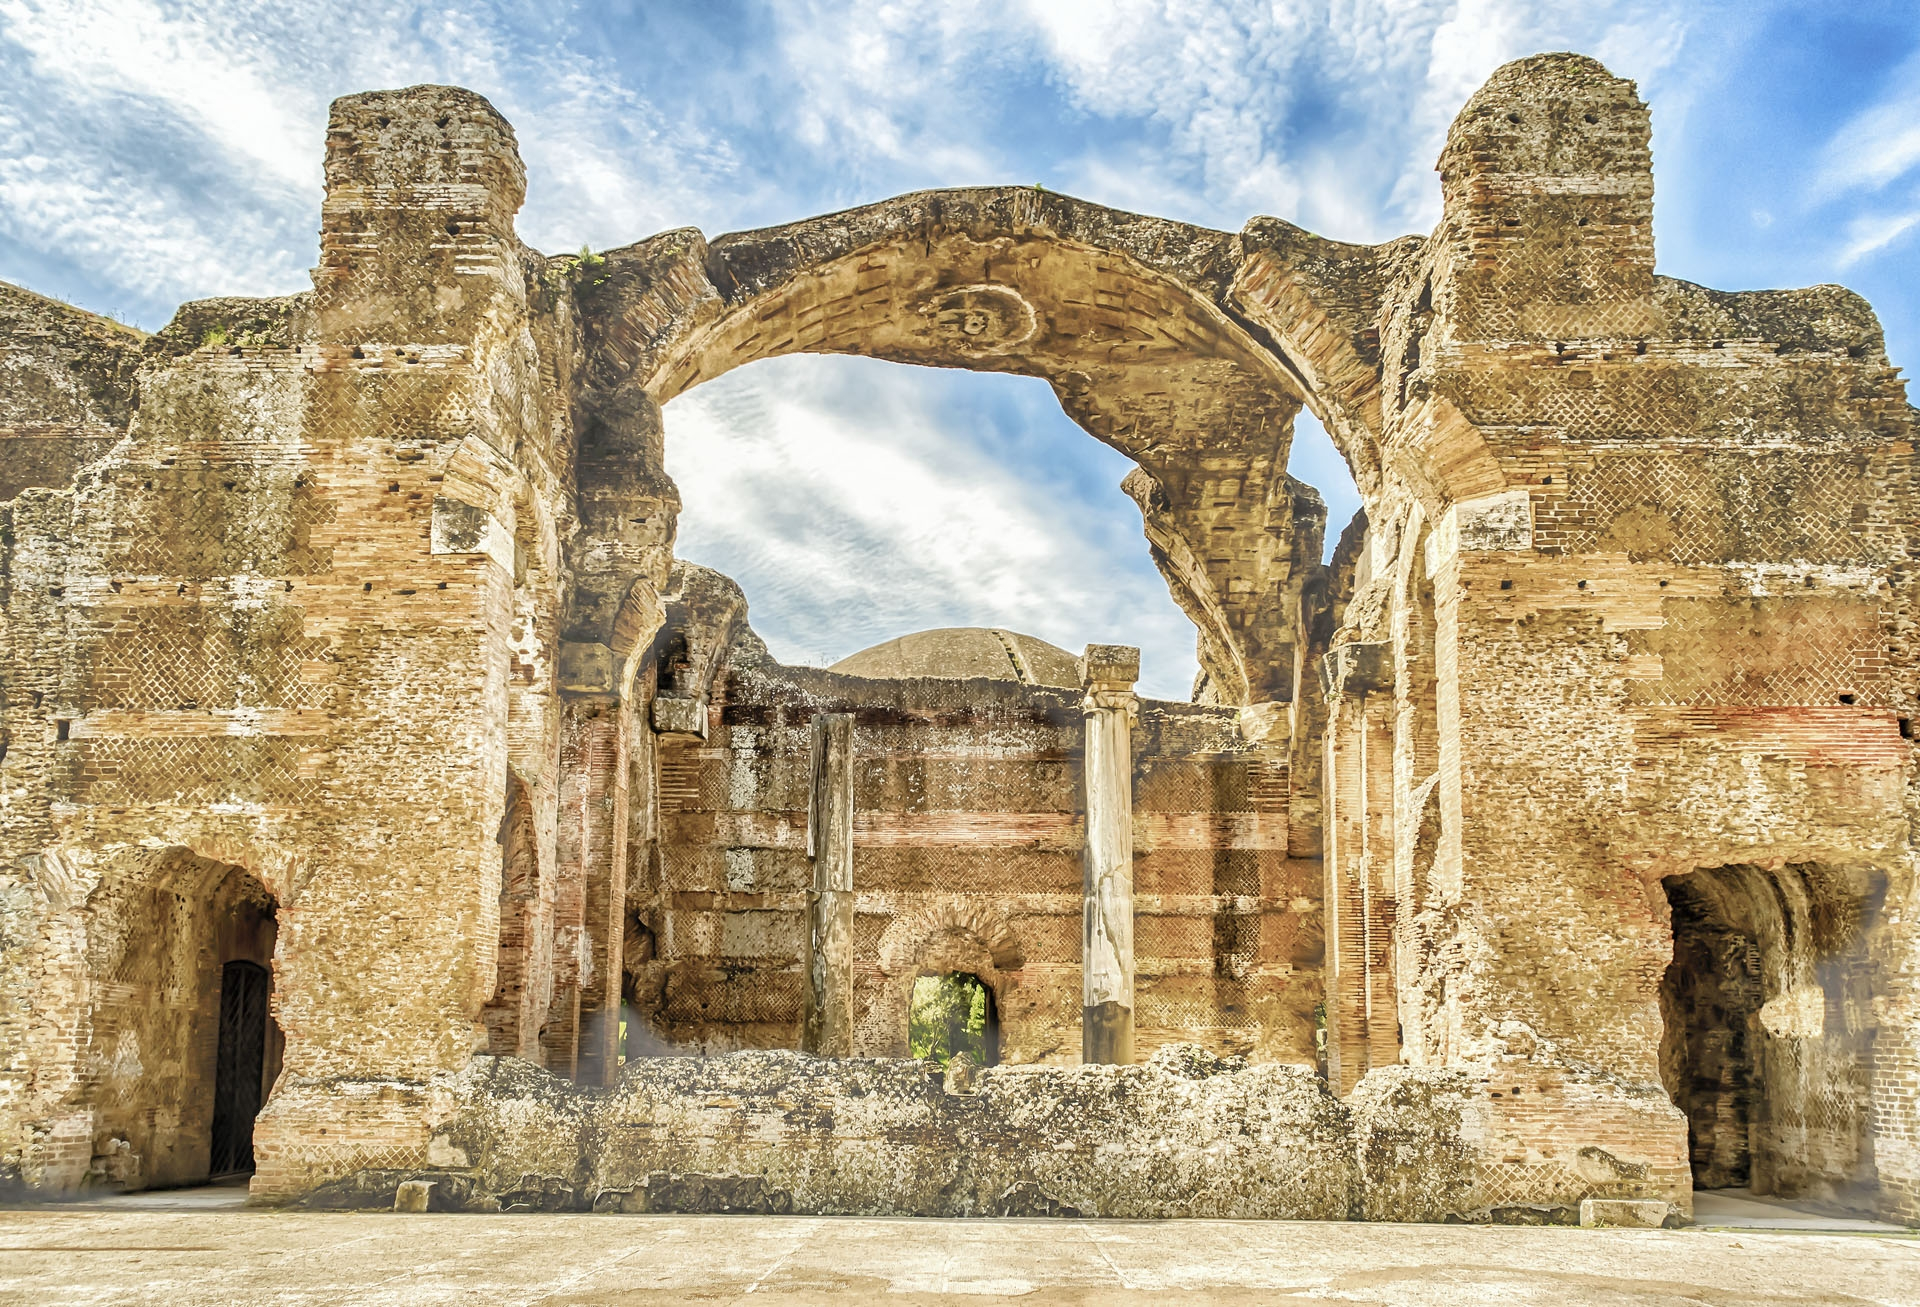 Ruins of the Great Baths in Villa Adriana, Tivoli, Italy